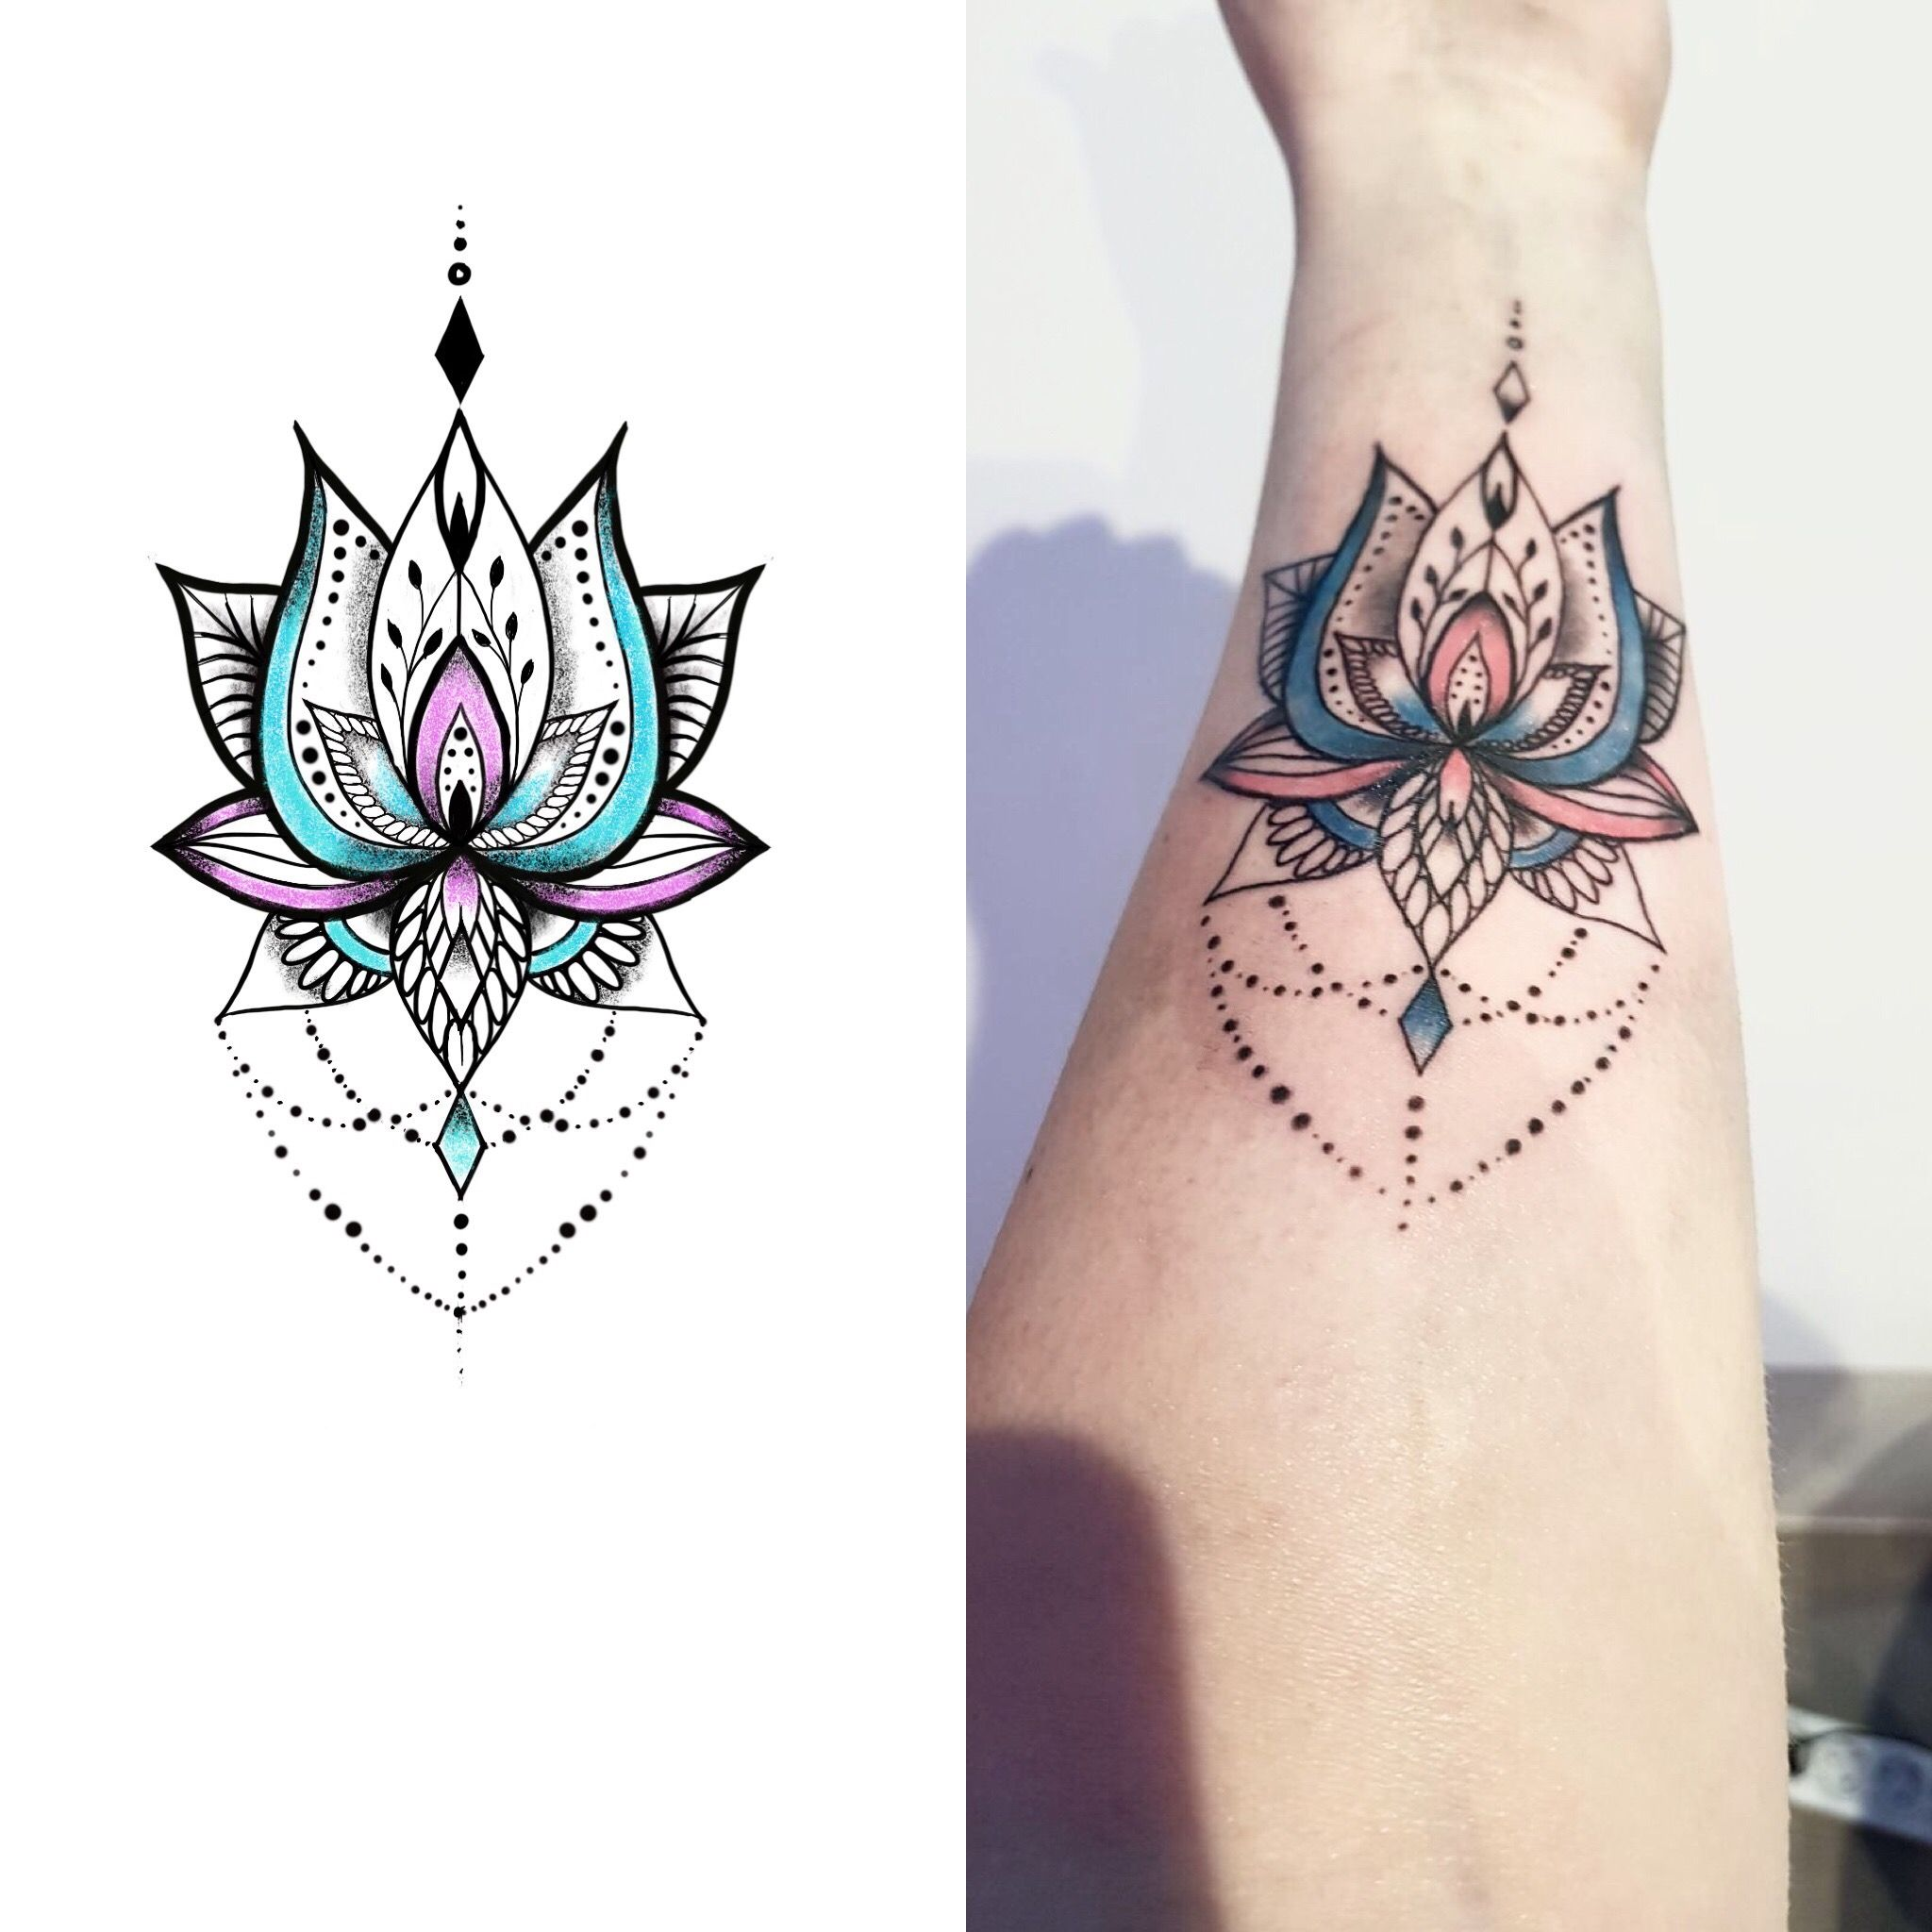 Lotus Mandala Tattoo Designed For Lovely Lady Lotus Mandala Tattoo Mandala Tattoo Design Tattoos For Women